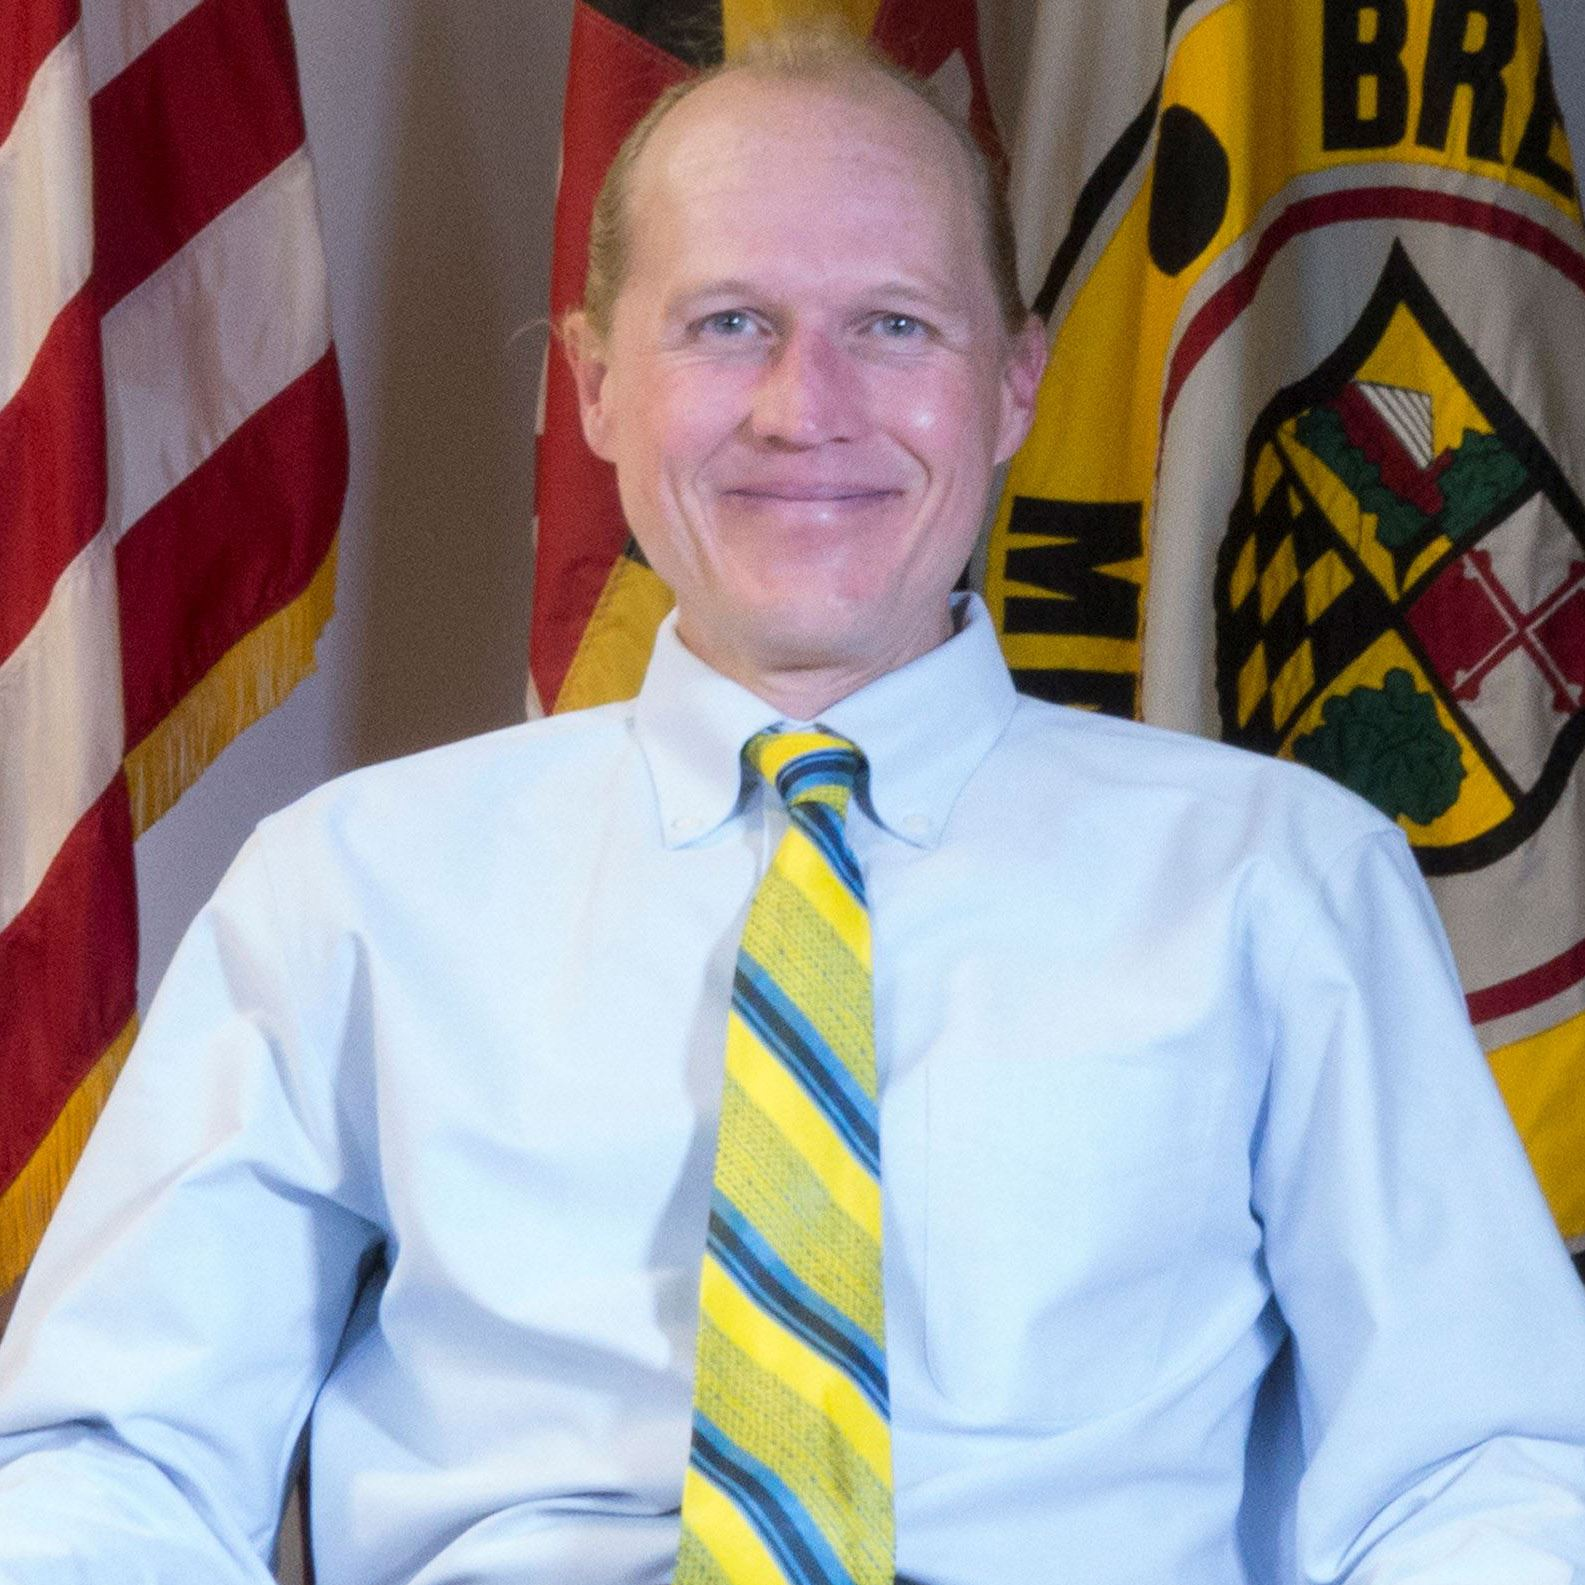 Council Member Jerry L. Burgess